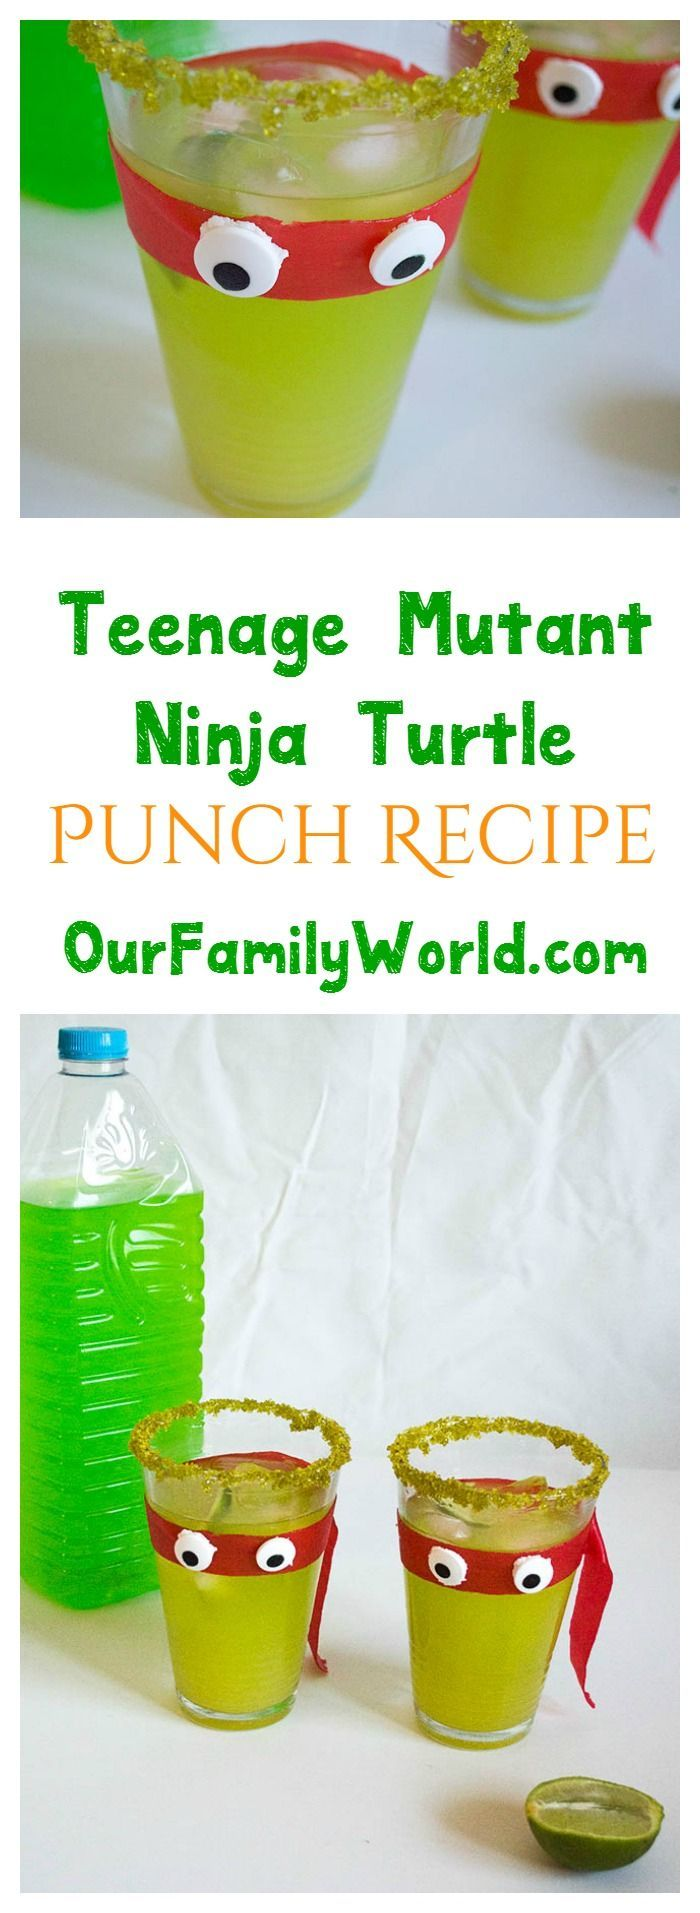 Teenage Mutant Ninja Turtles: Out of Shadows is hitting the theater on June 3rd and my teen wants to celebrate with a pre-movie party! You can't have a party without snacks and drinks, right? What better way to celebrate than with a movie-inspired mocktai